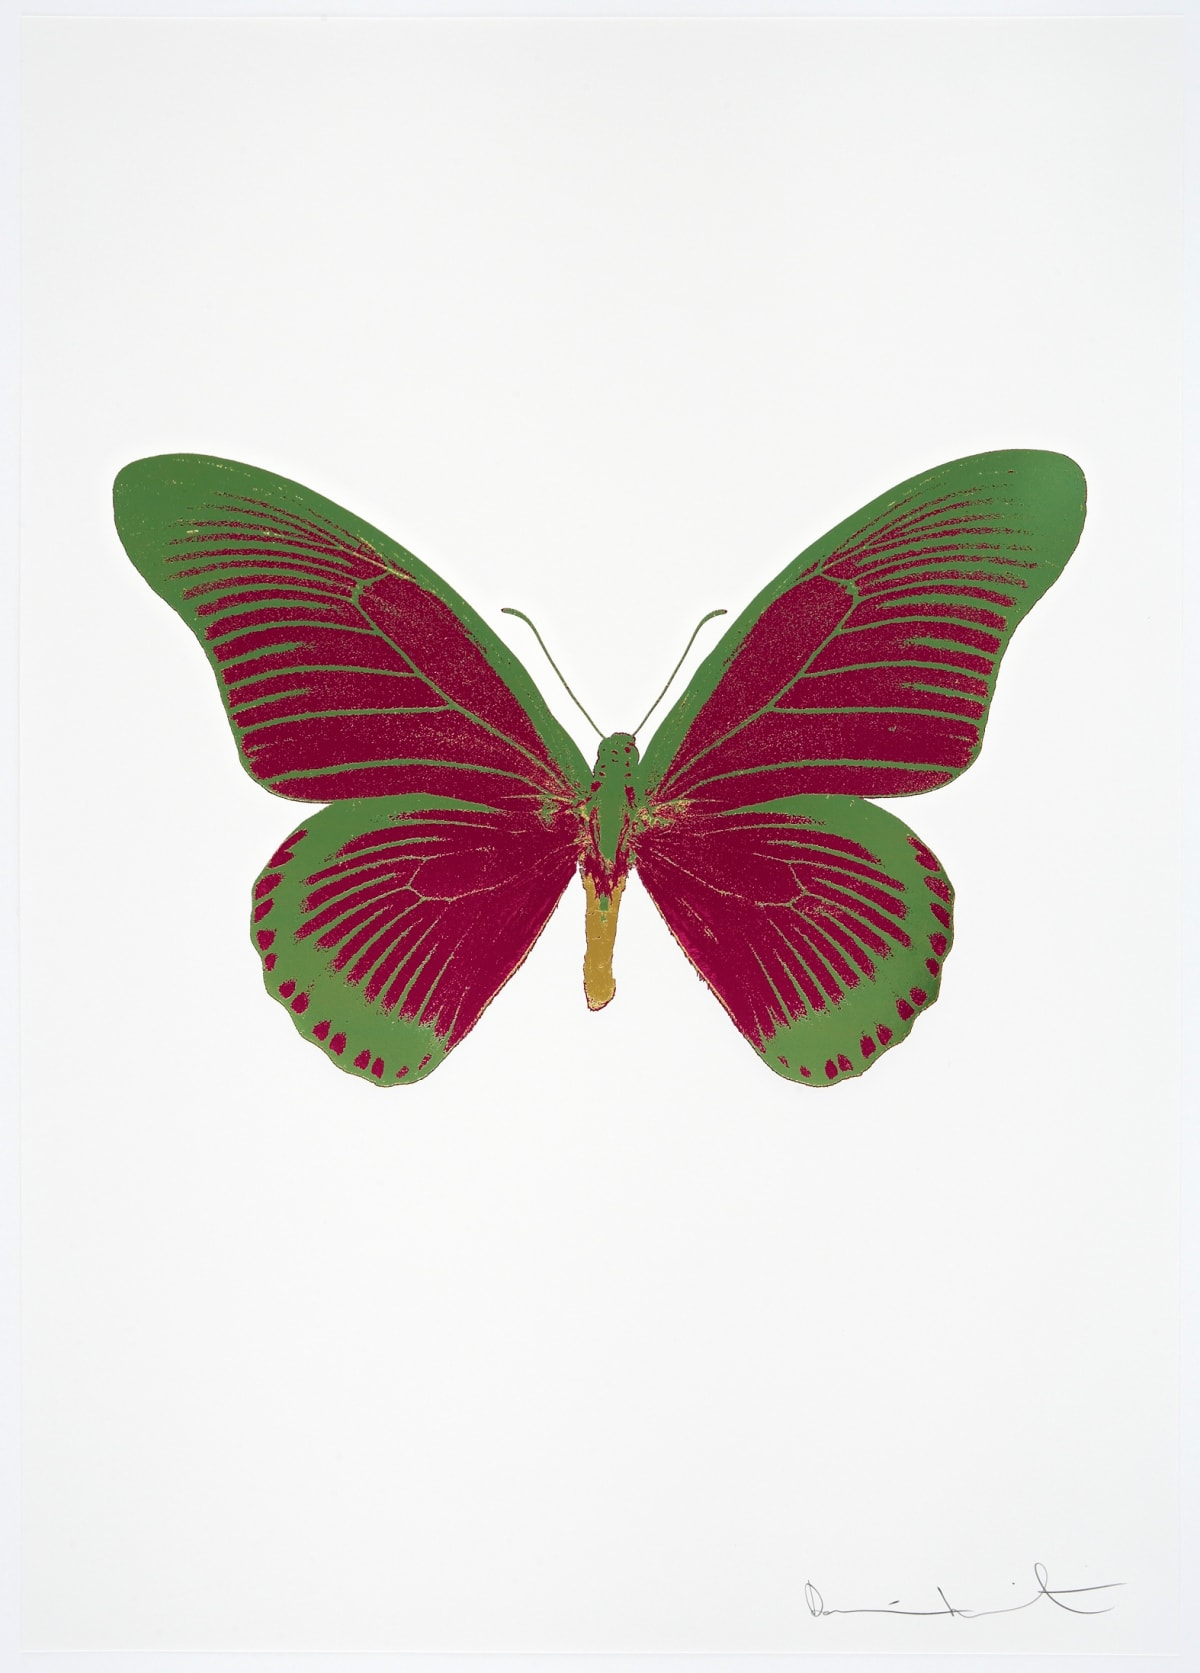 Damien Hirst The Souls IV - Fuchsia Pink/Leaf Green/Oriental Gold, 2010 3 colour foil block on 300gsm Arches 88 archival paper. Signed and numbered. Published by Paul Stolper and Other Criteria 72 x 51cm OC8057 / 1418-80 Edition of 15